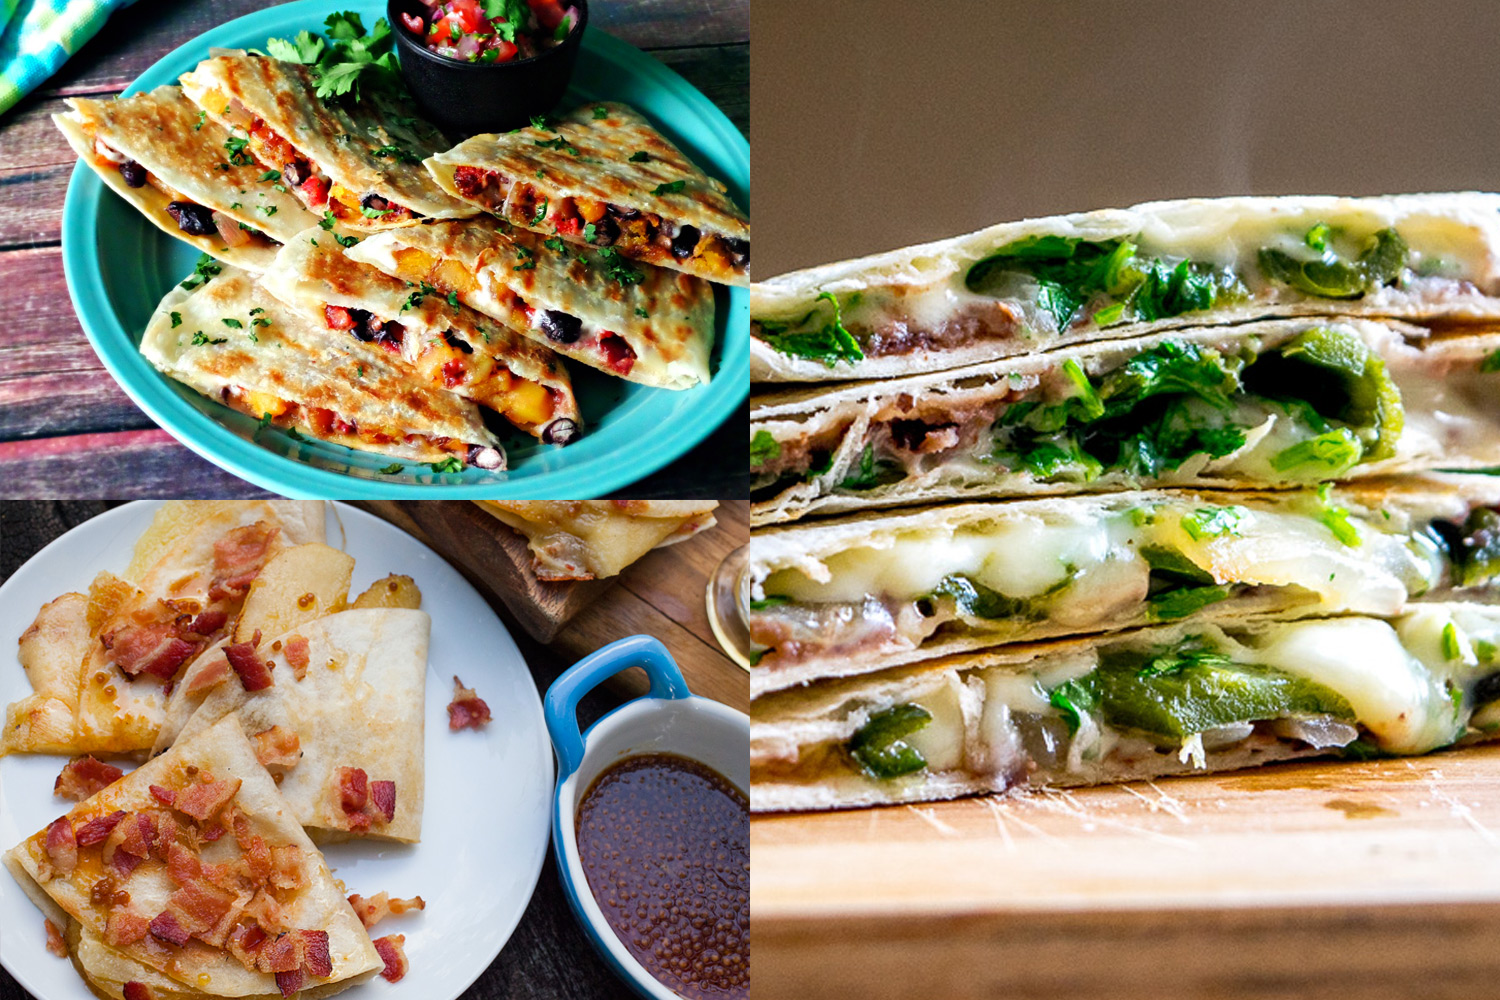 Ace Your Kids' School Lunch With These 12 Quesadilla Recipes, photo by Hispanic Kitchen